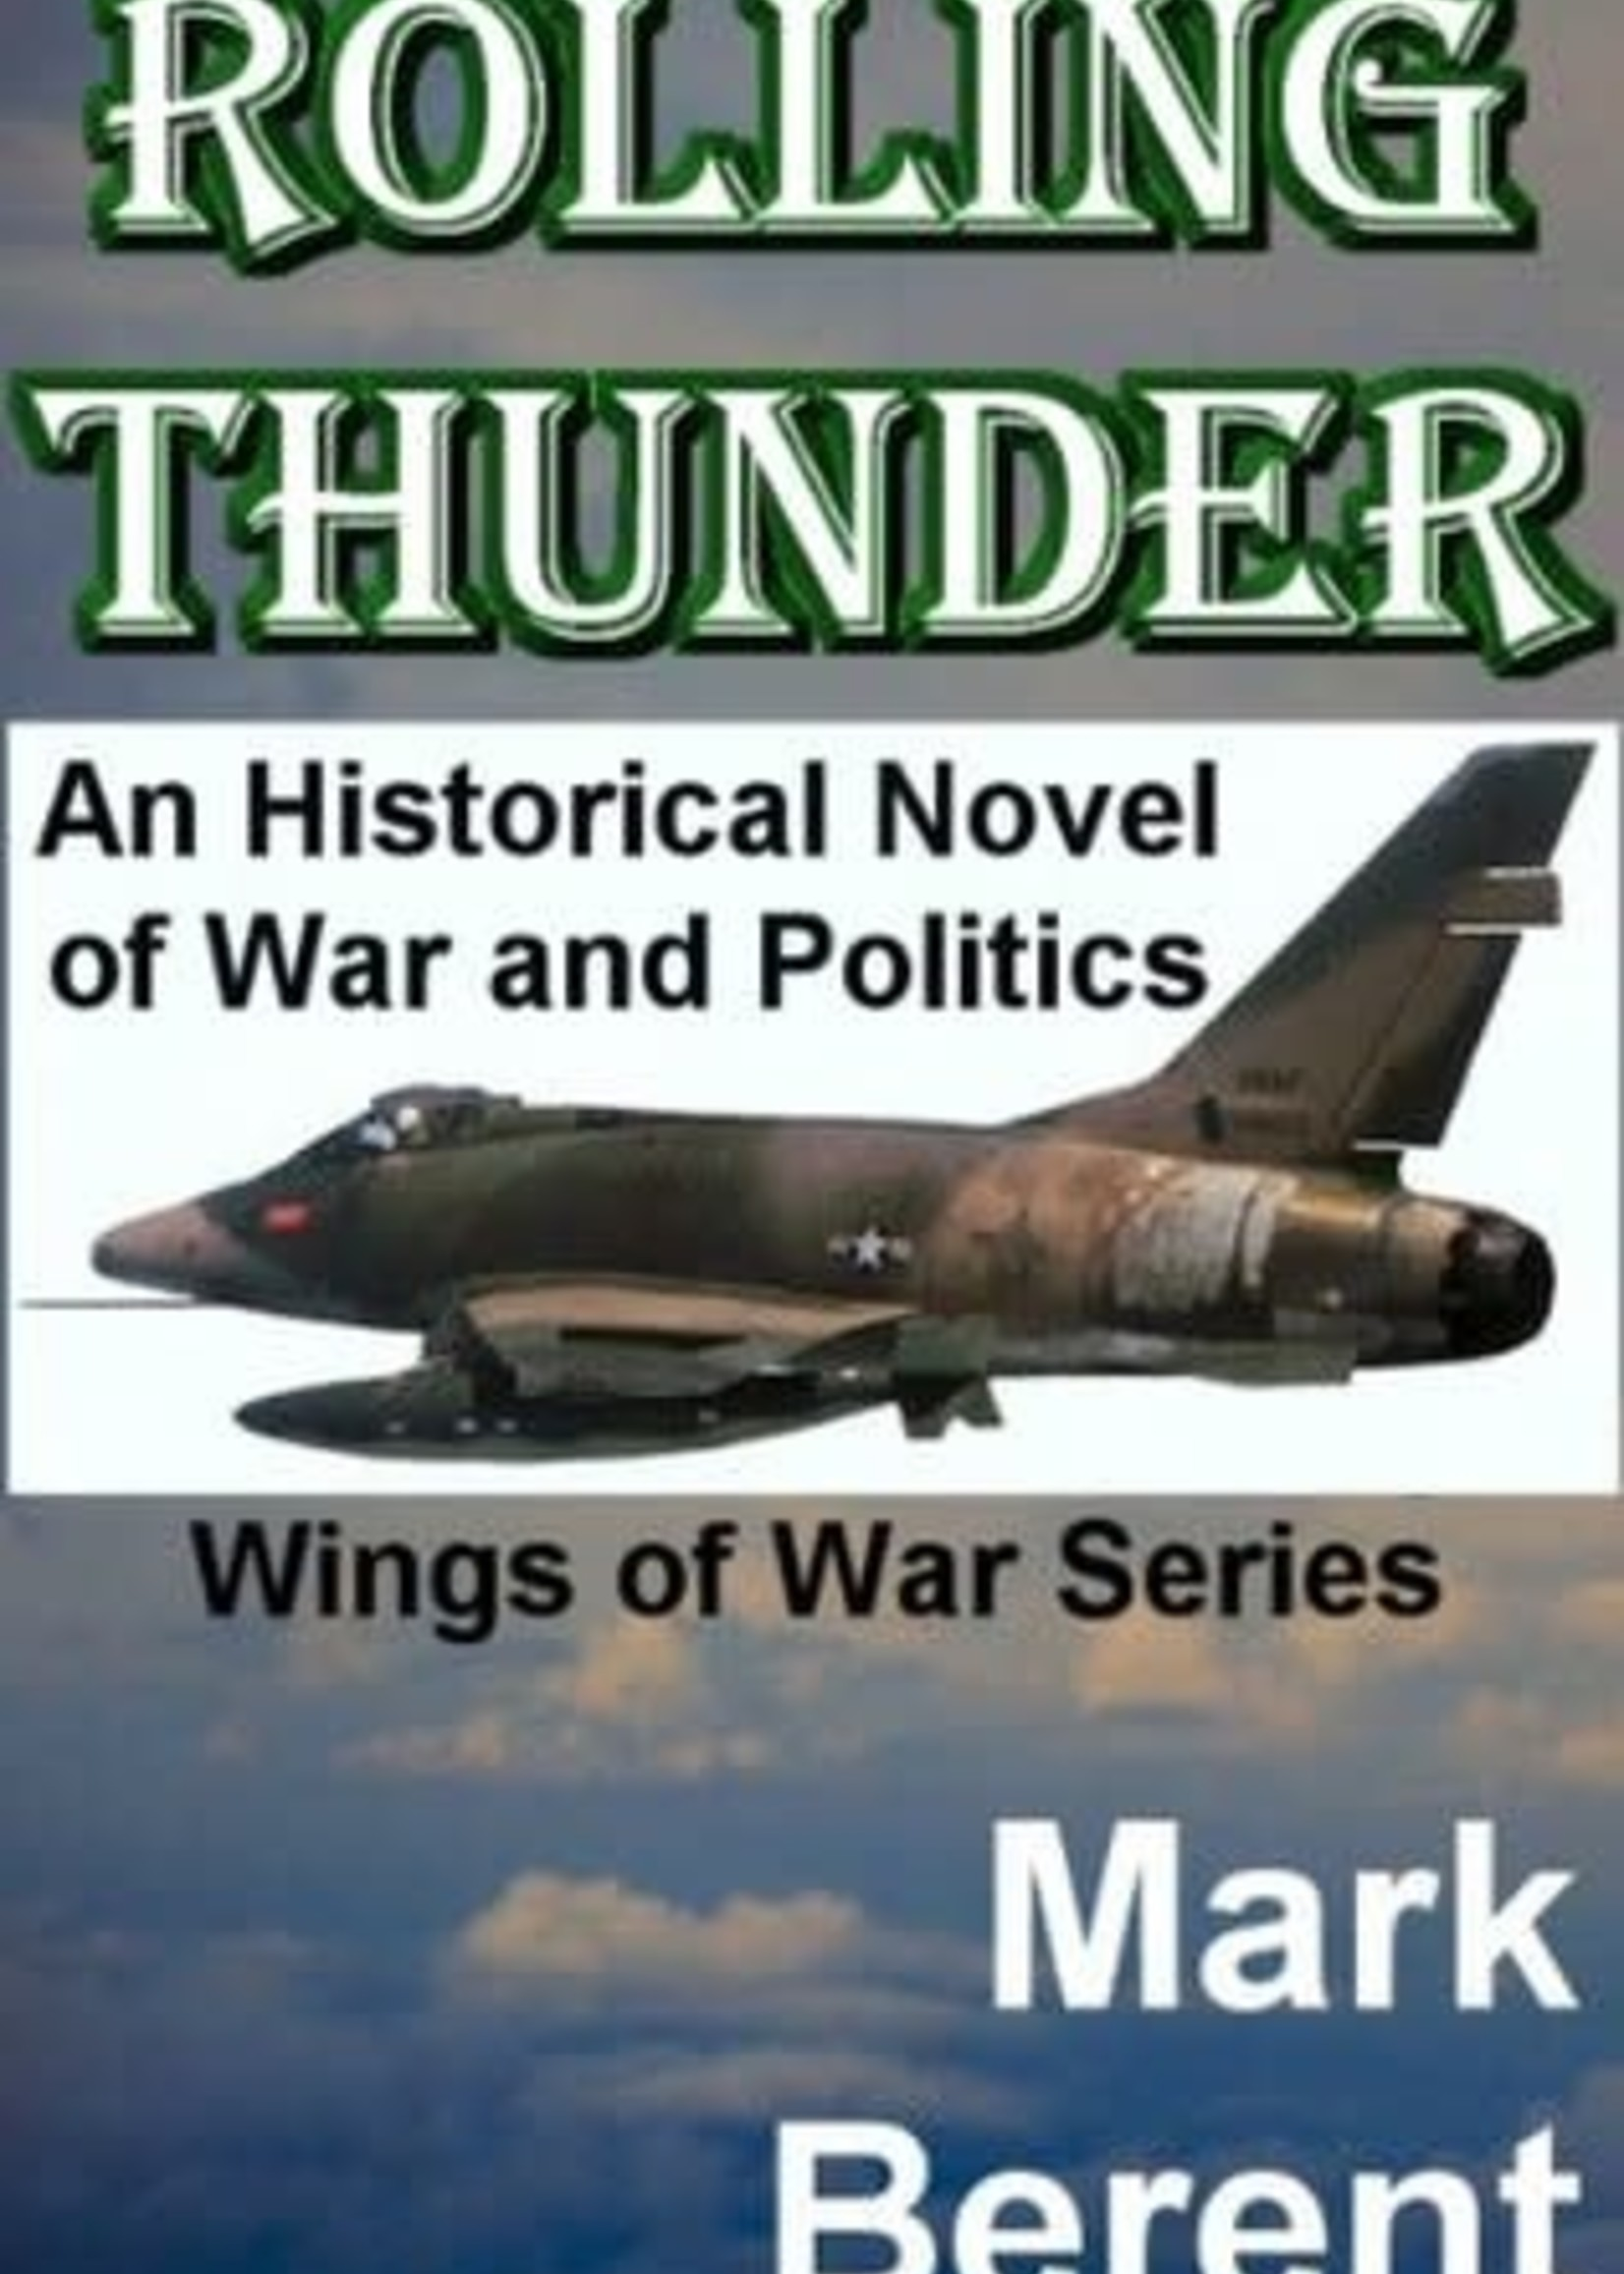 USED - Rolling Thunder by Mark Berent